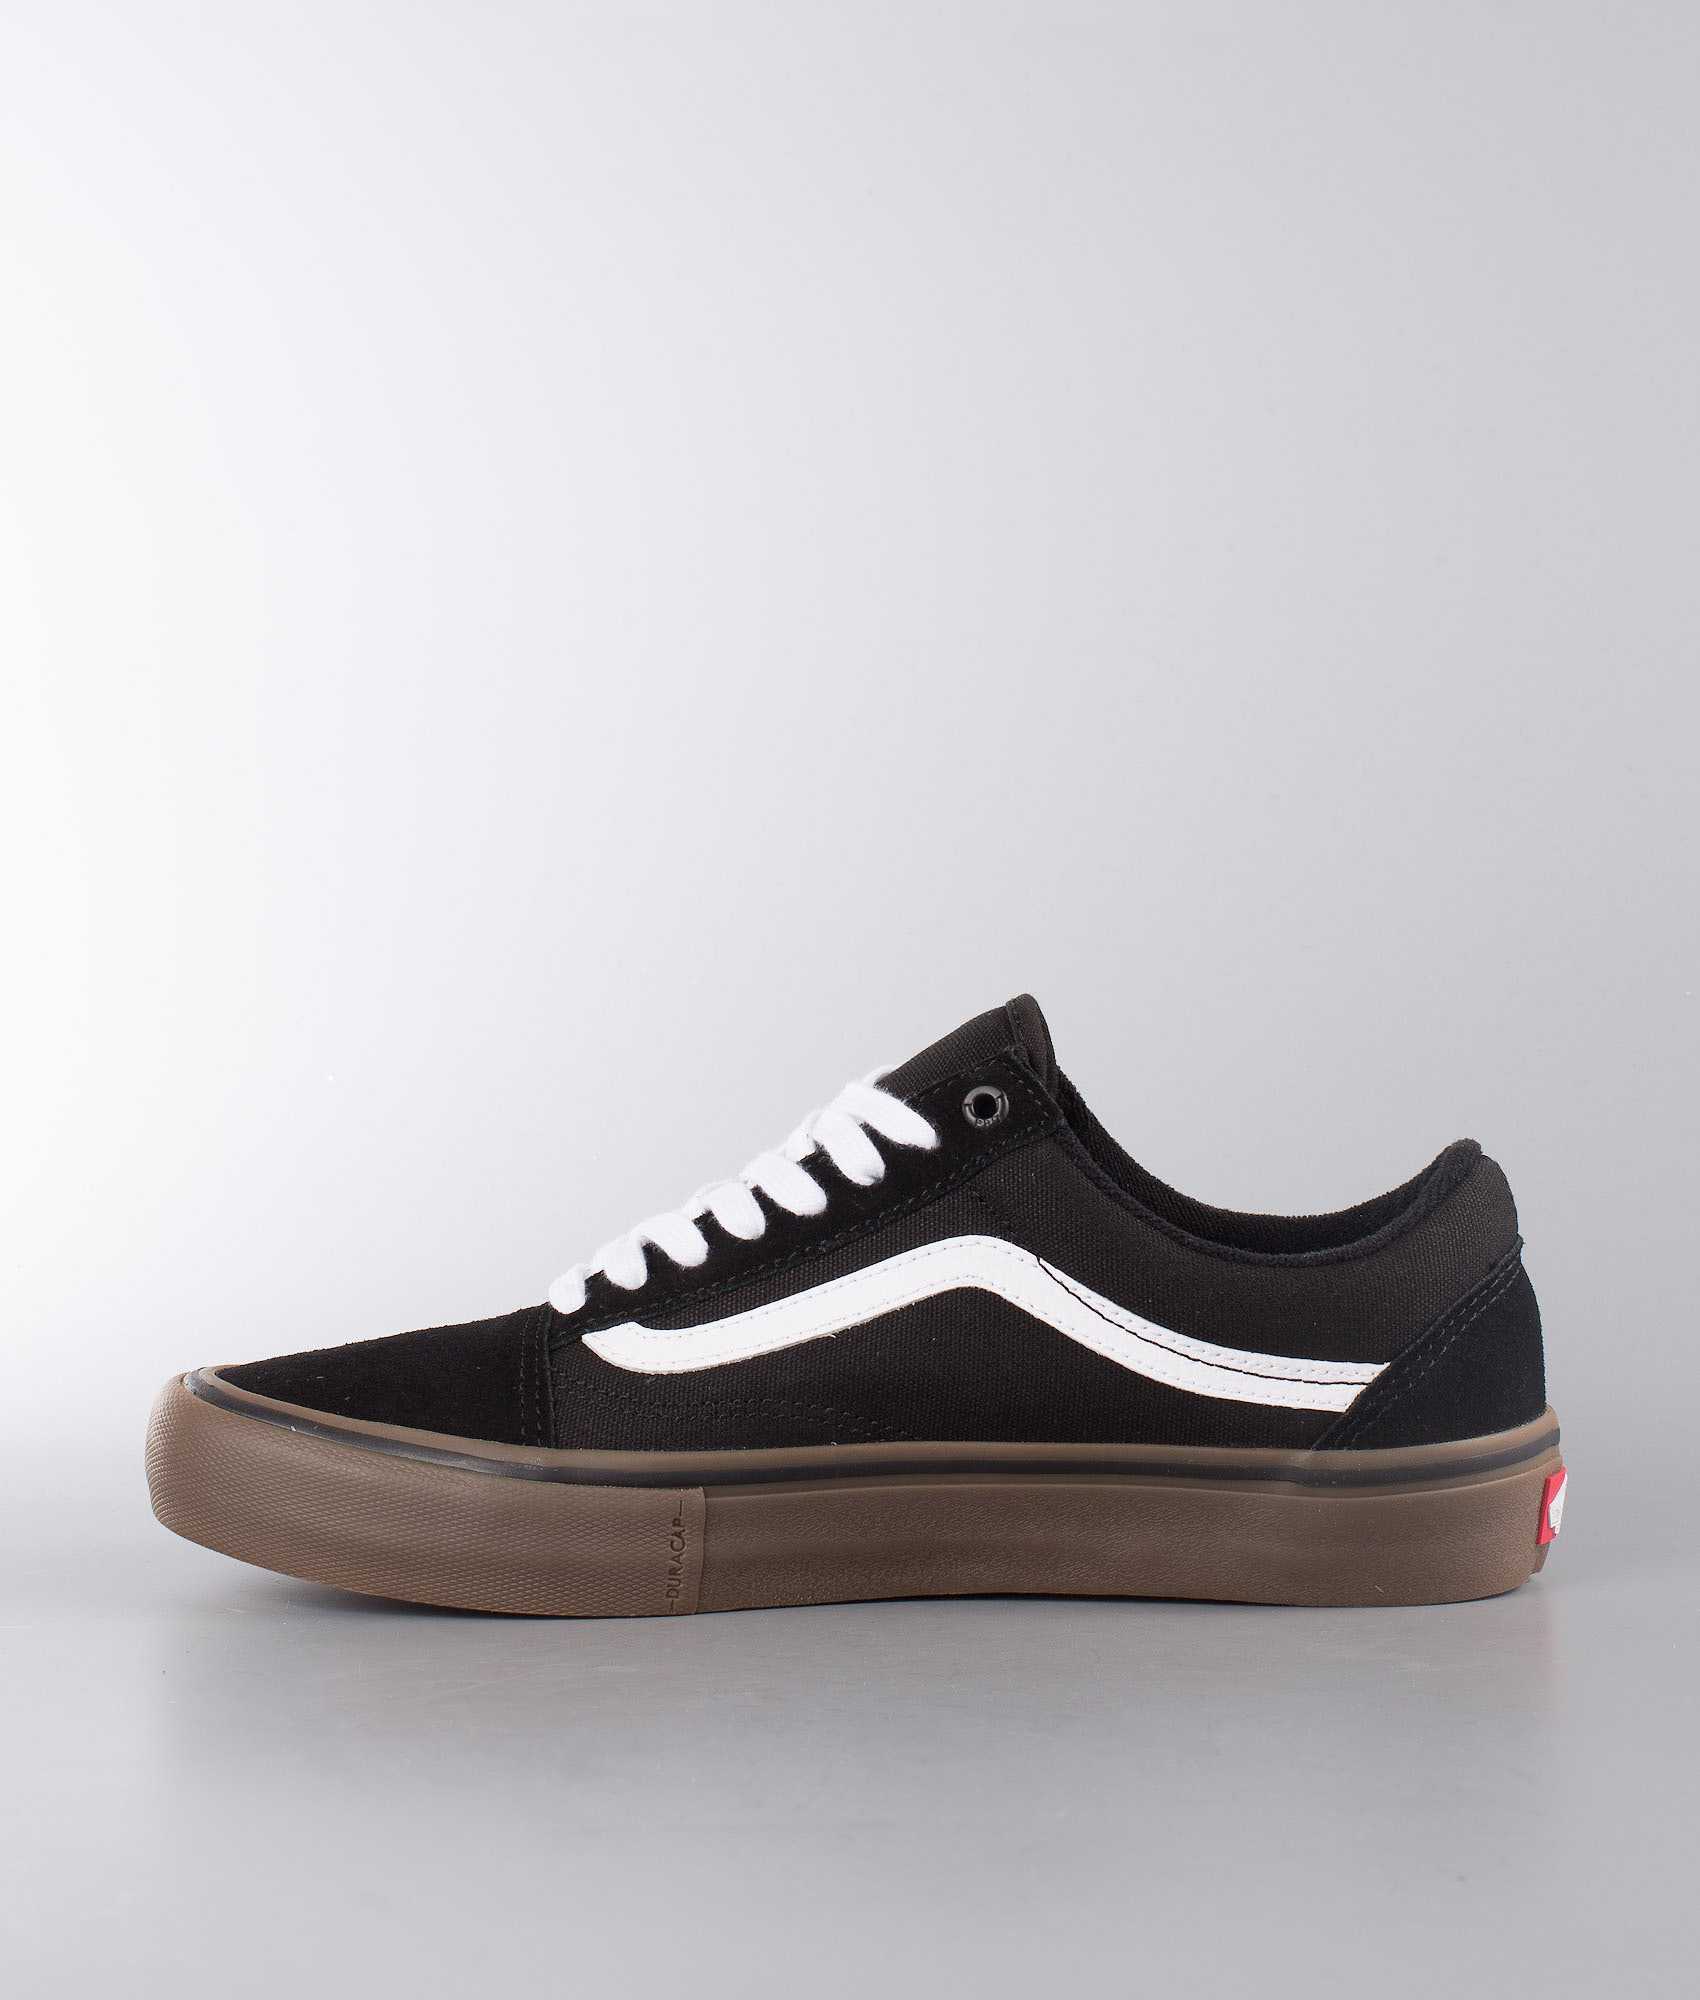 1322f86c1f0 Vans Old Skool Pro Shoes Black White Medium Gum - Ridestore.com